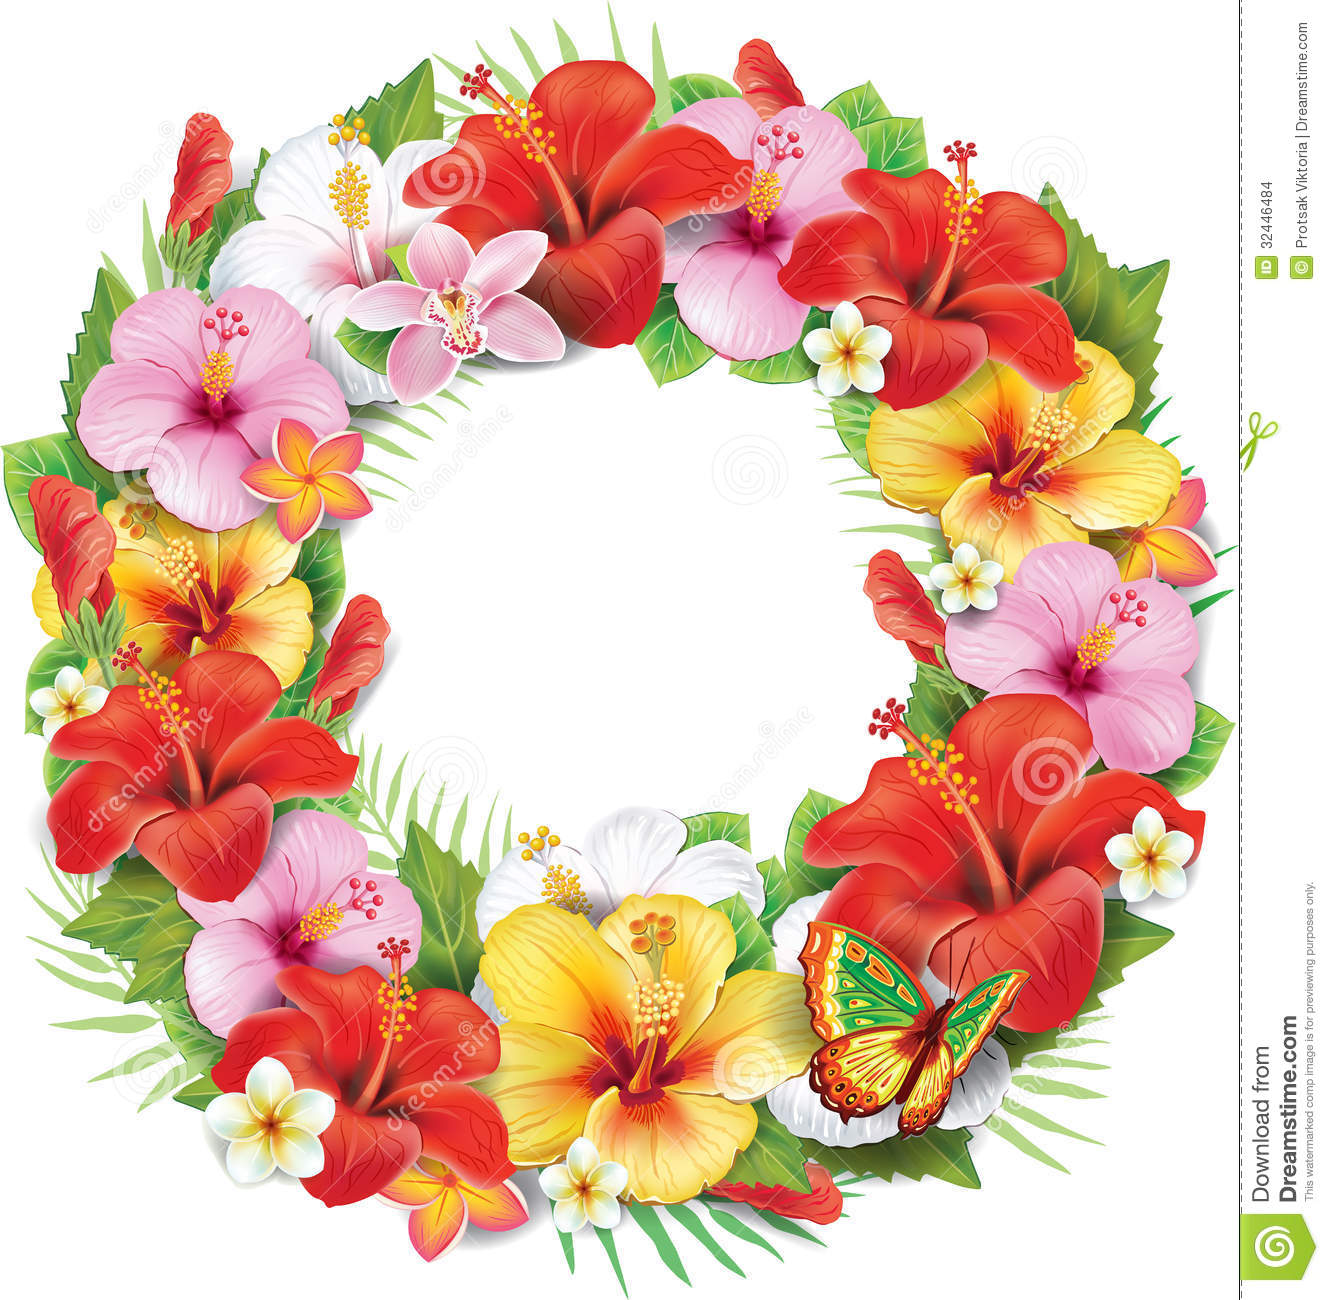 Wreath Of Tropical Flower Stock Images - Image: 32446484